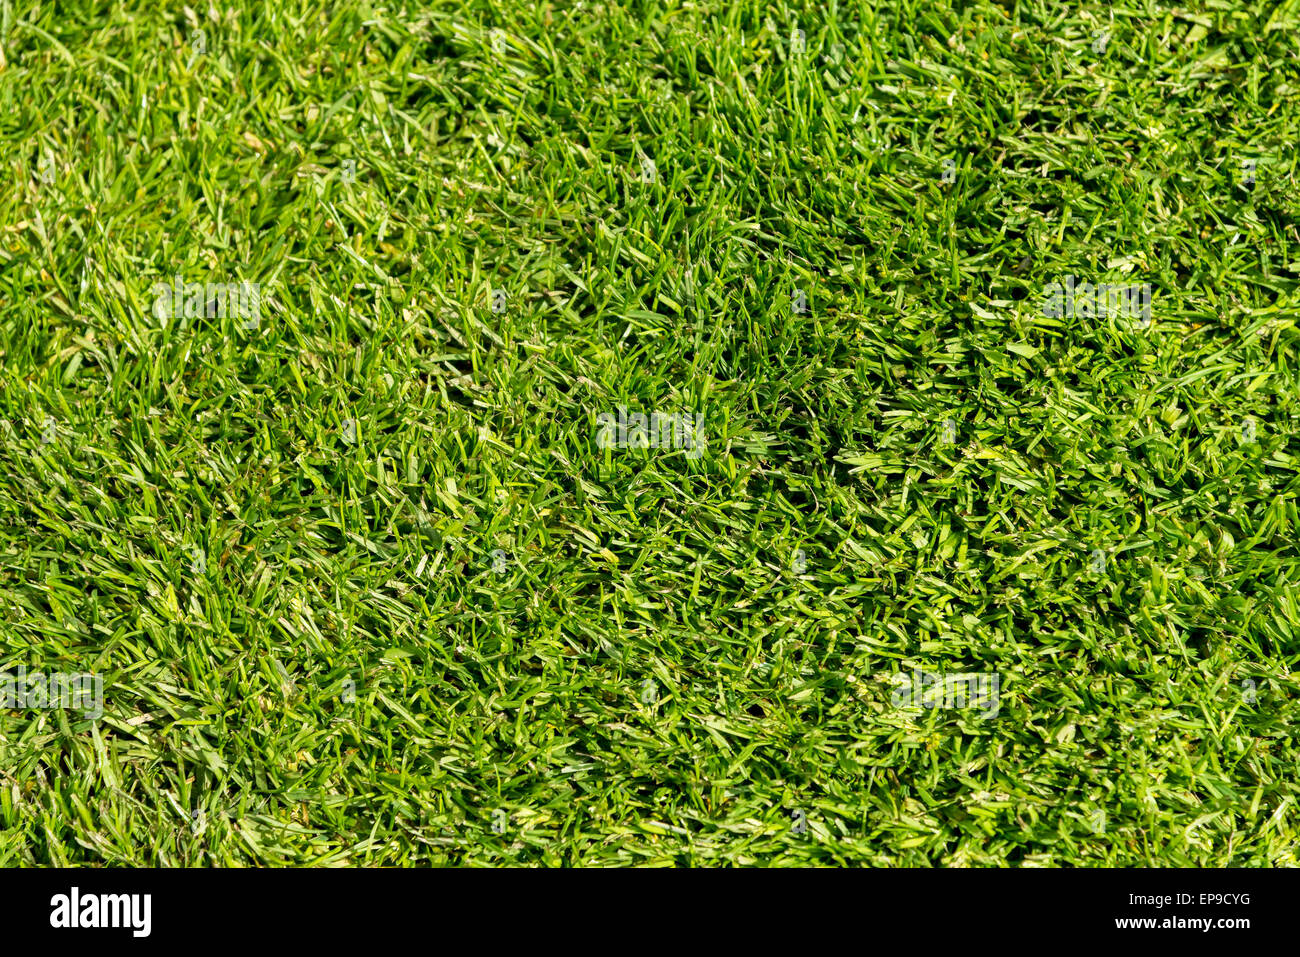 Green Grass Lawn - Stock Image